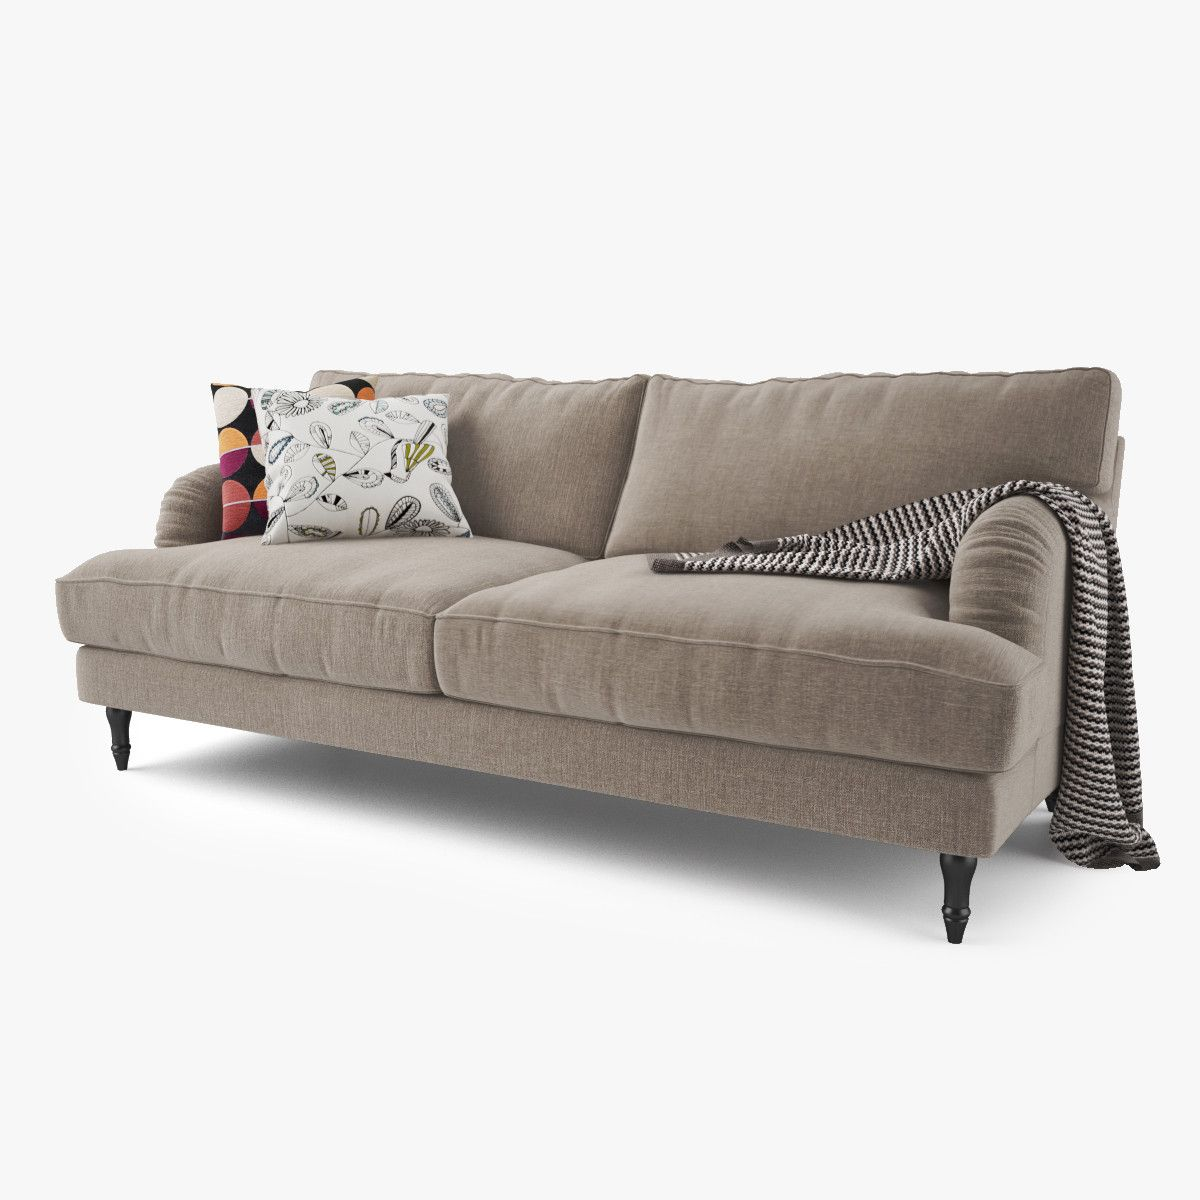 Ikea möbel sofas  stocksund sofa - Google Search | -OUR FIRST HOME- | Pinterest